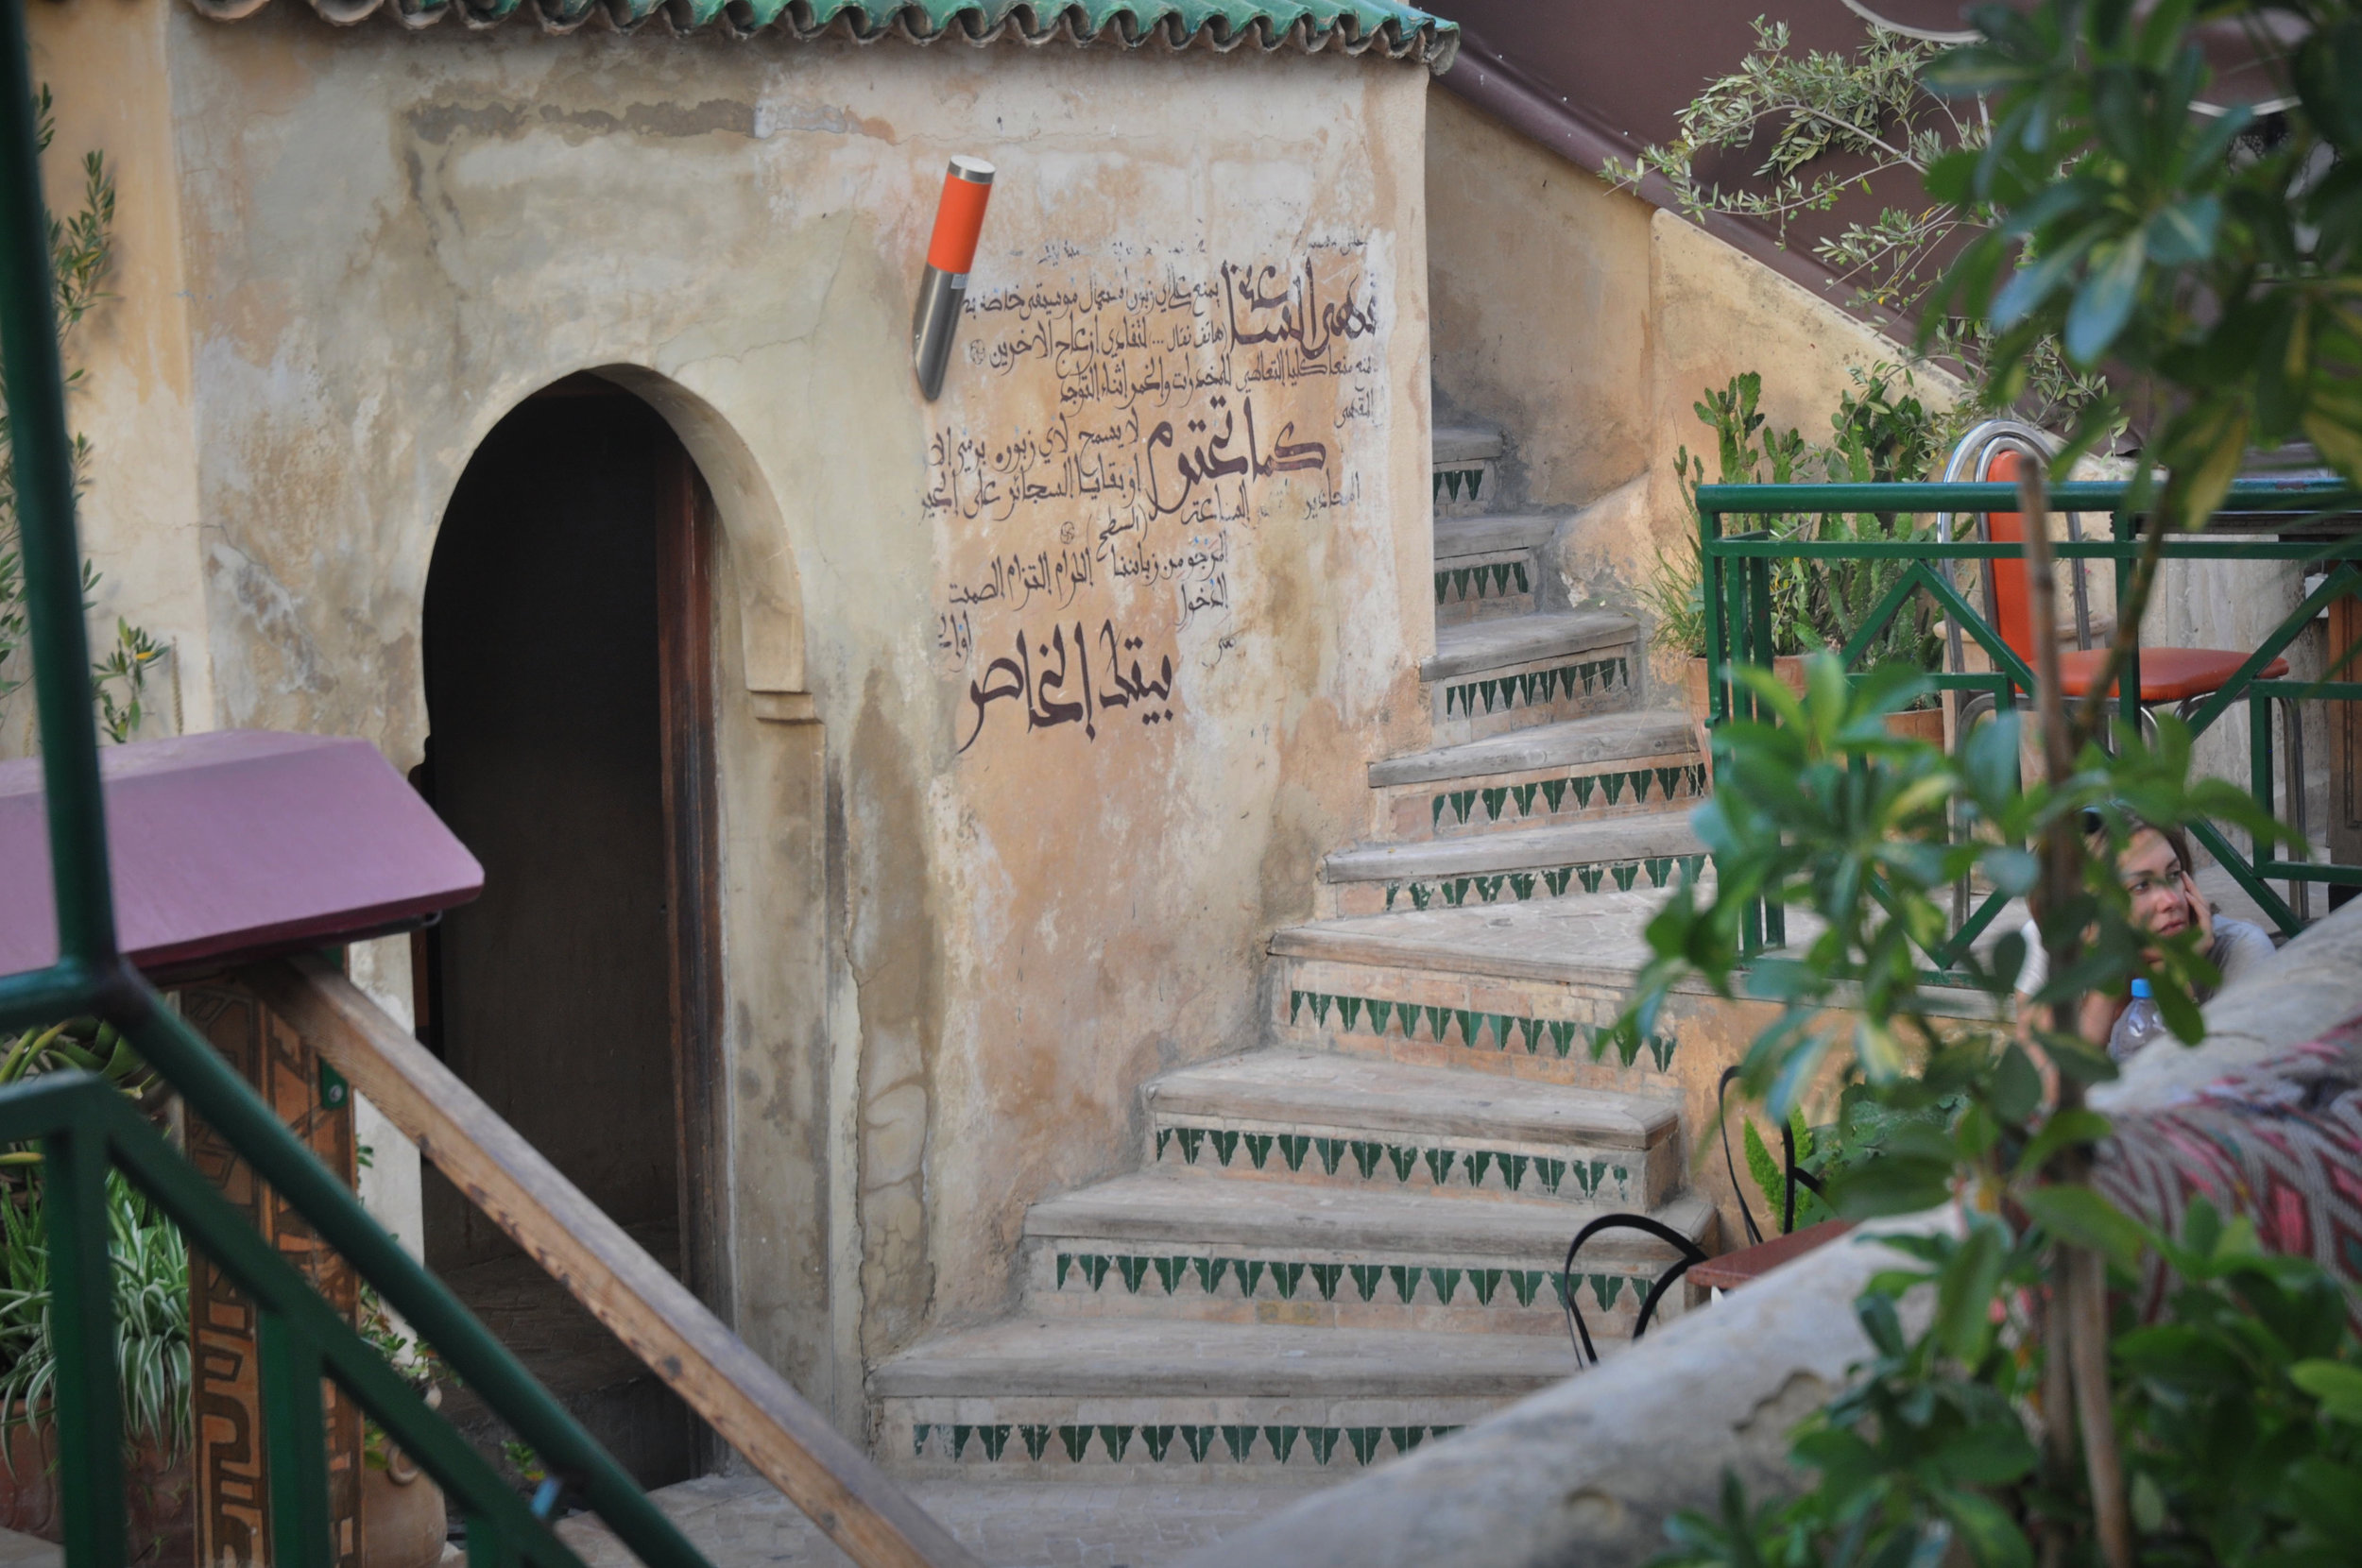 MOROCCO - If you solve enough problems, you get to go home